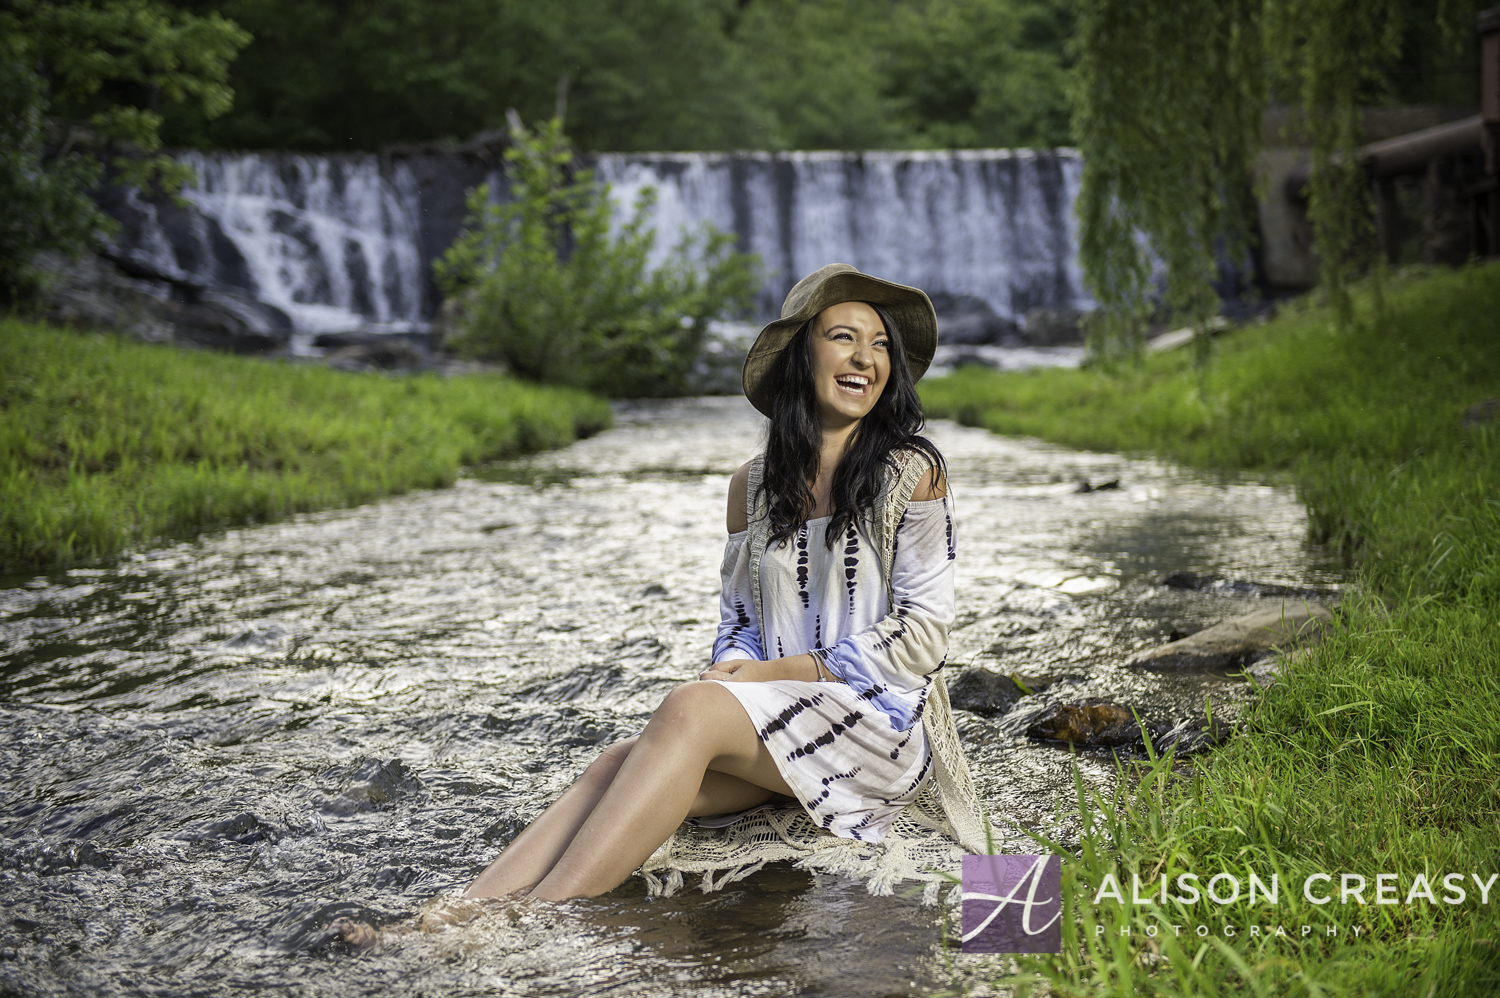 Bailey_Alison Creasy Photography_Seniors-371-Edit.jpg